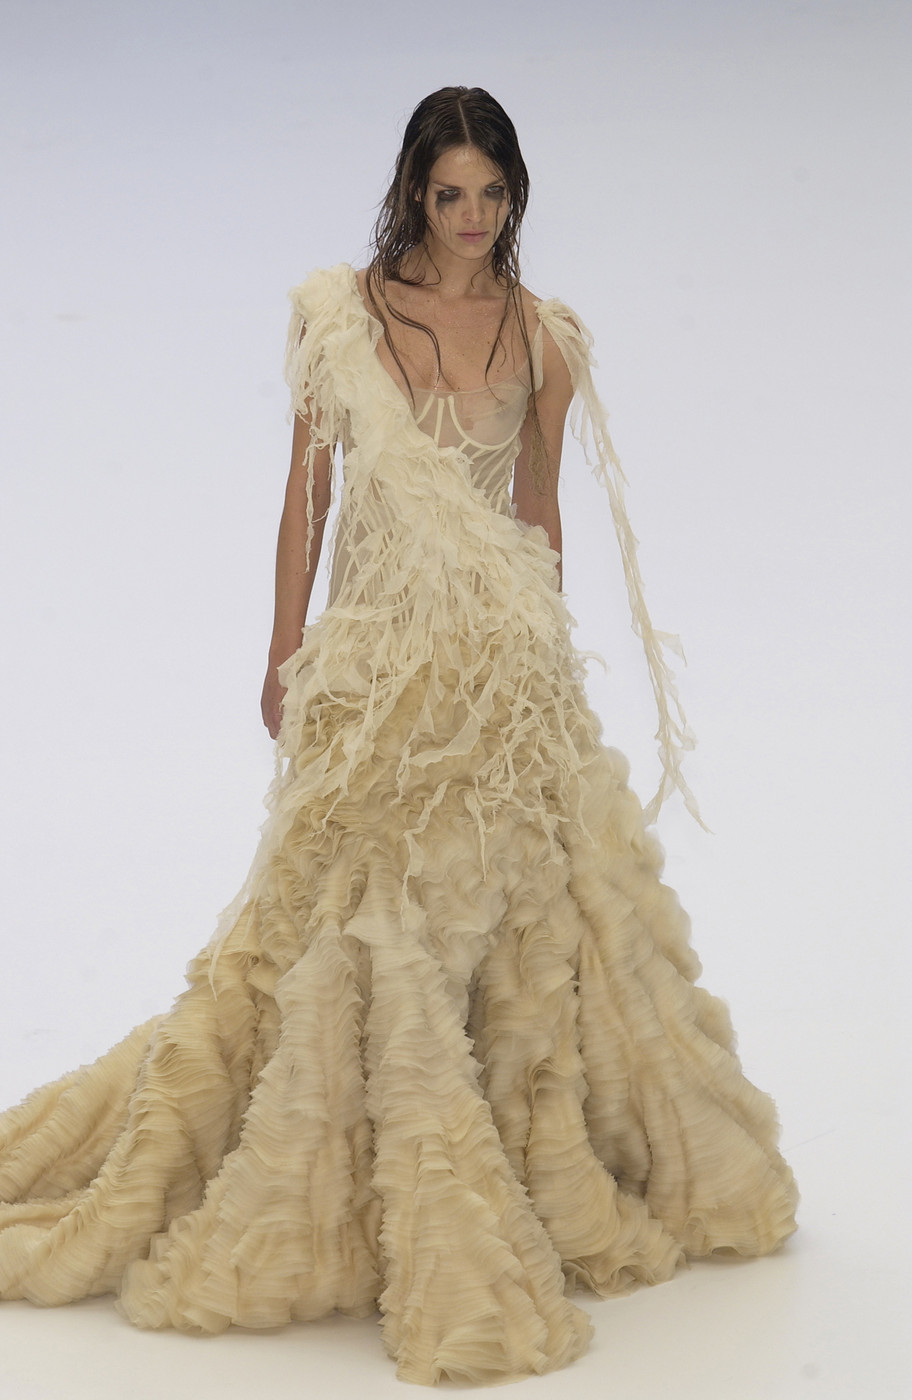 "Alexander McQueen ""Irere"" Spring/Summer 2003 collection via fashioned by love British fashion blog"